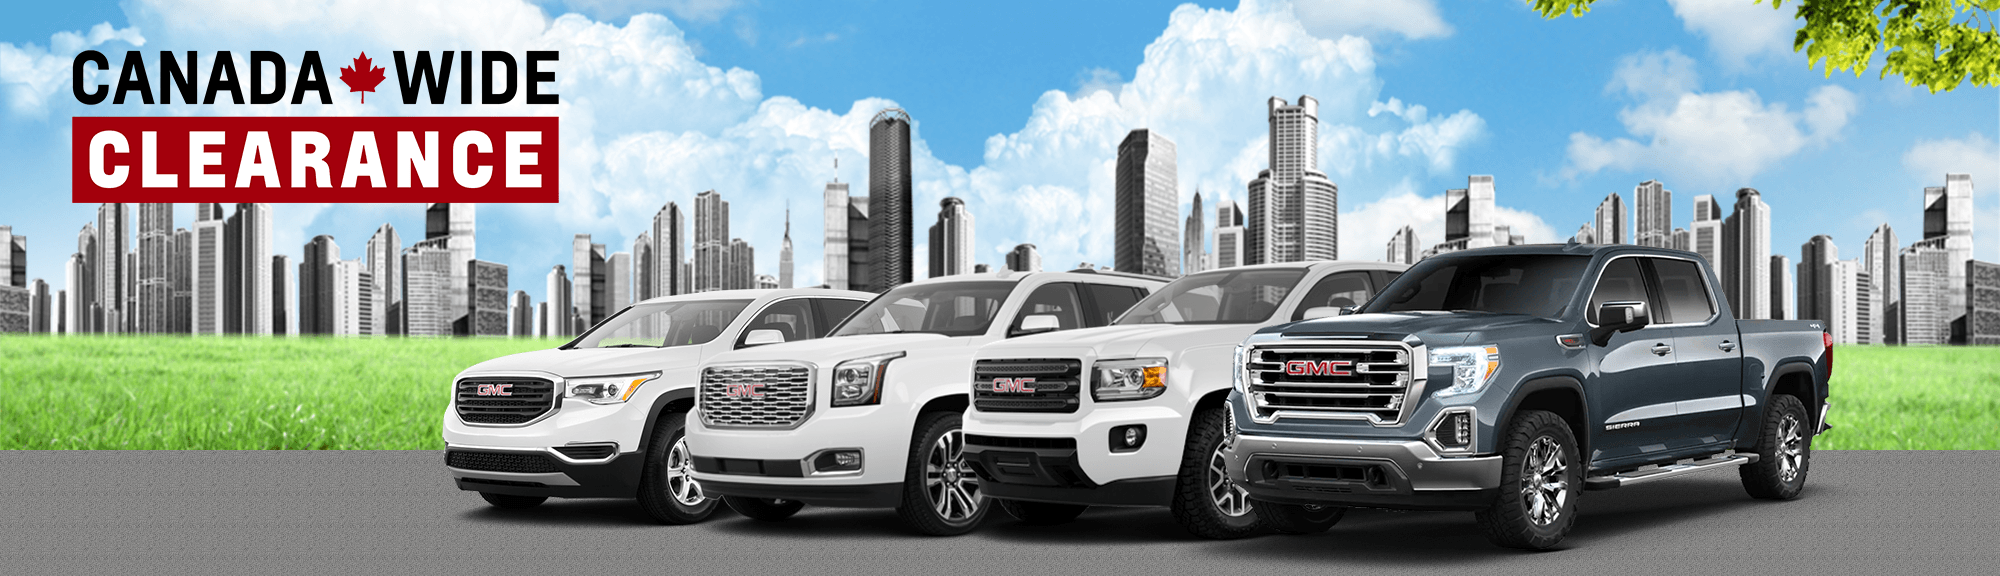 Gmc Canada Wide Clearance Huron Motor Products Exeter Dealer On